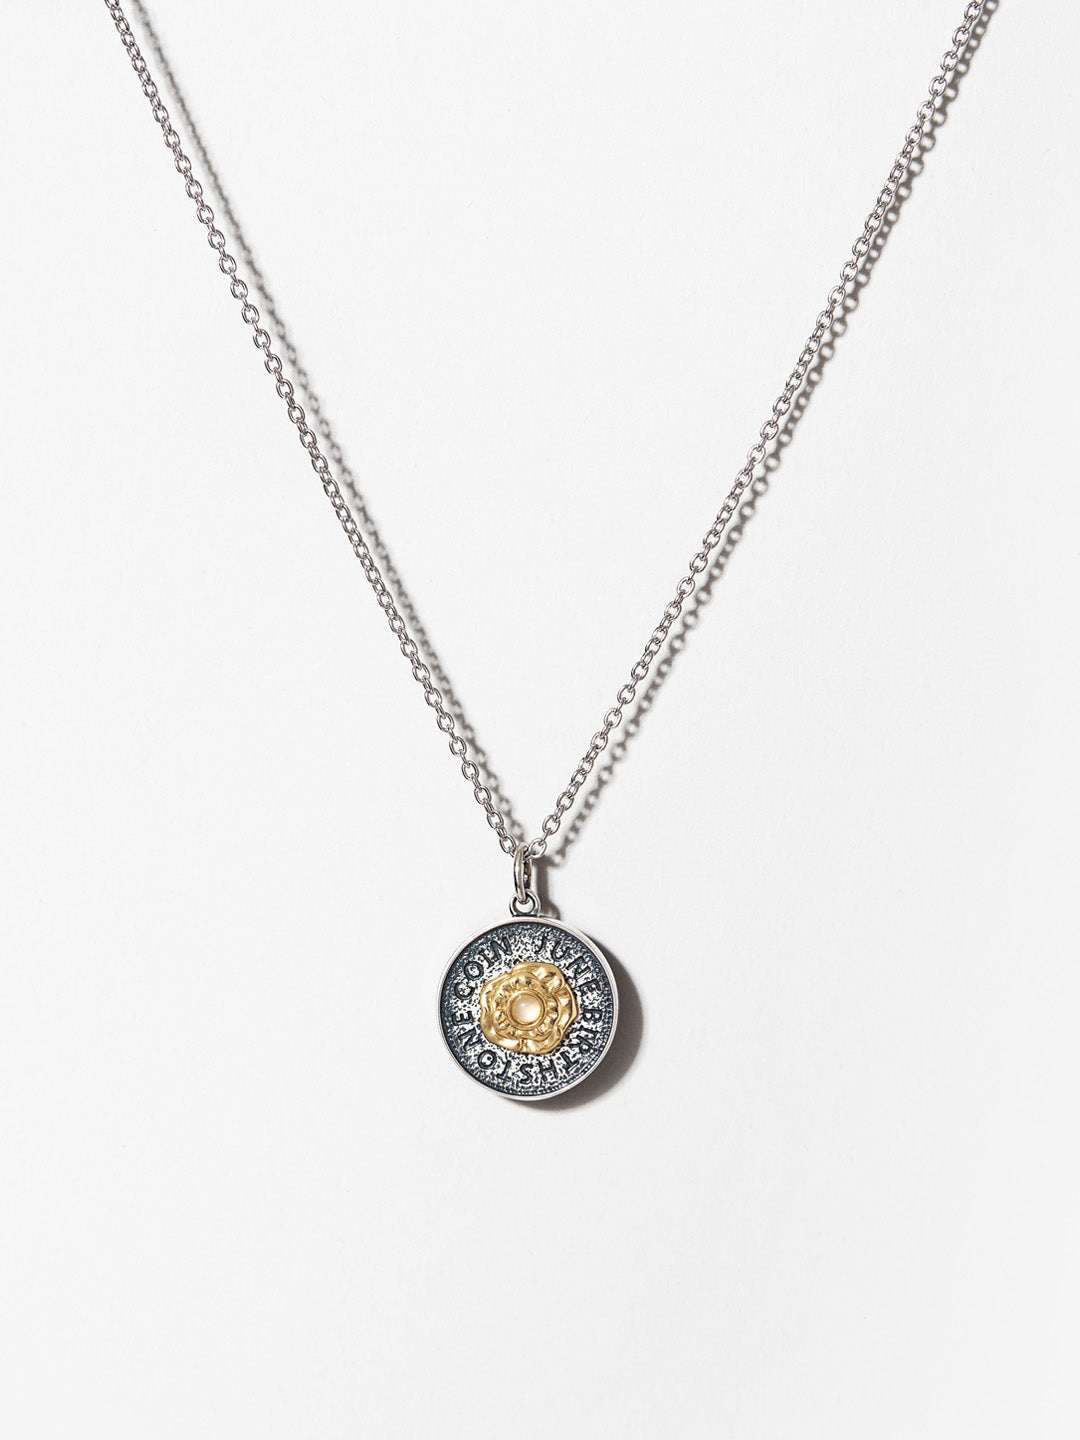 Ana Luisa Necklaces Pendant Necklace Birthstone Necklace Moonstone June Silver